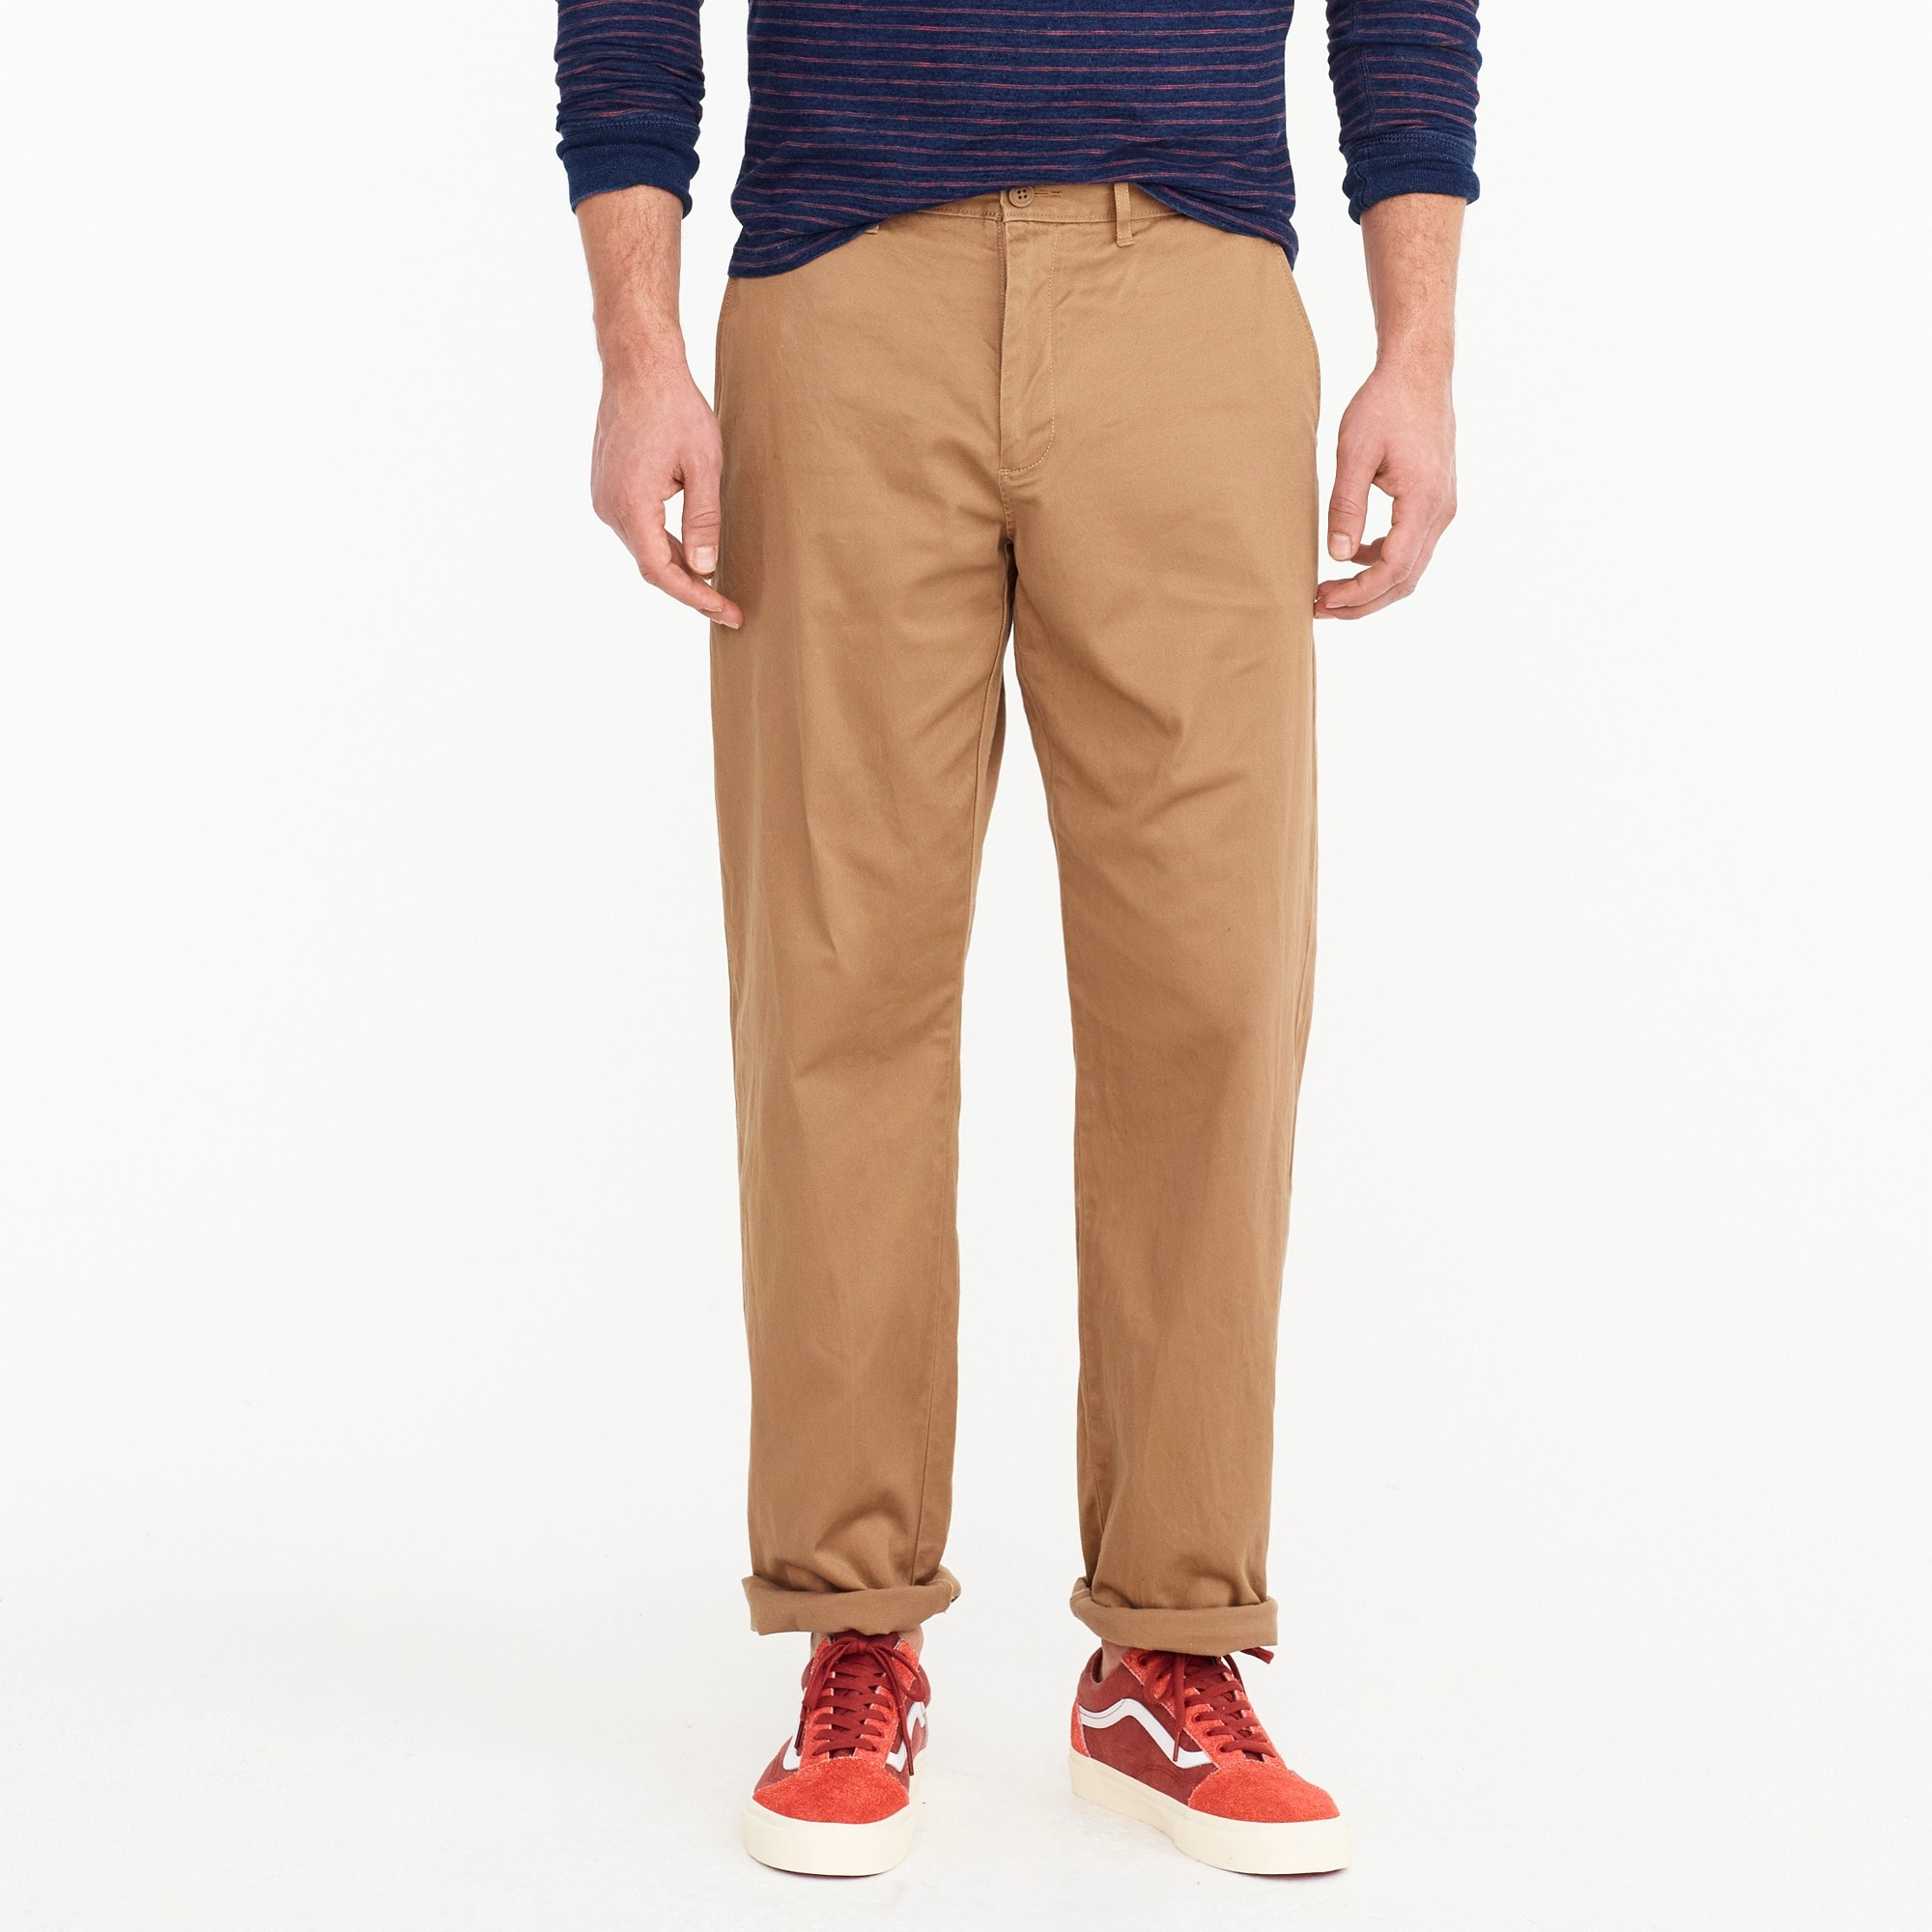 Relaxed fit stretch chino